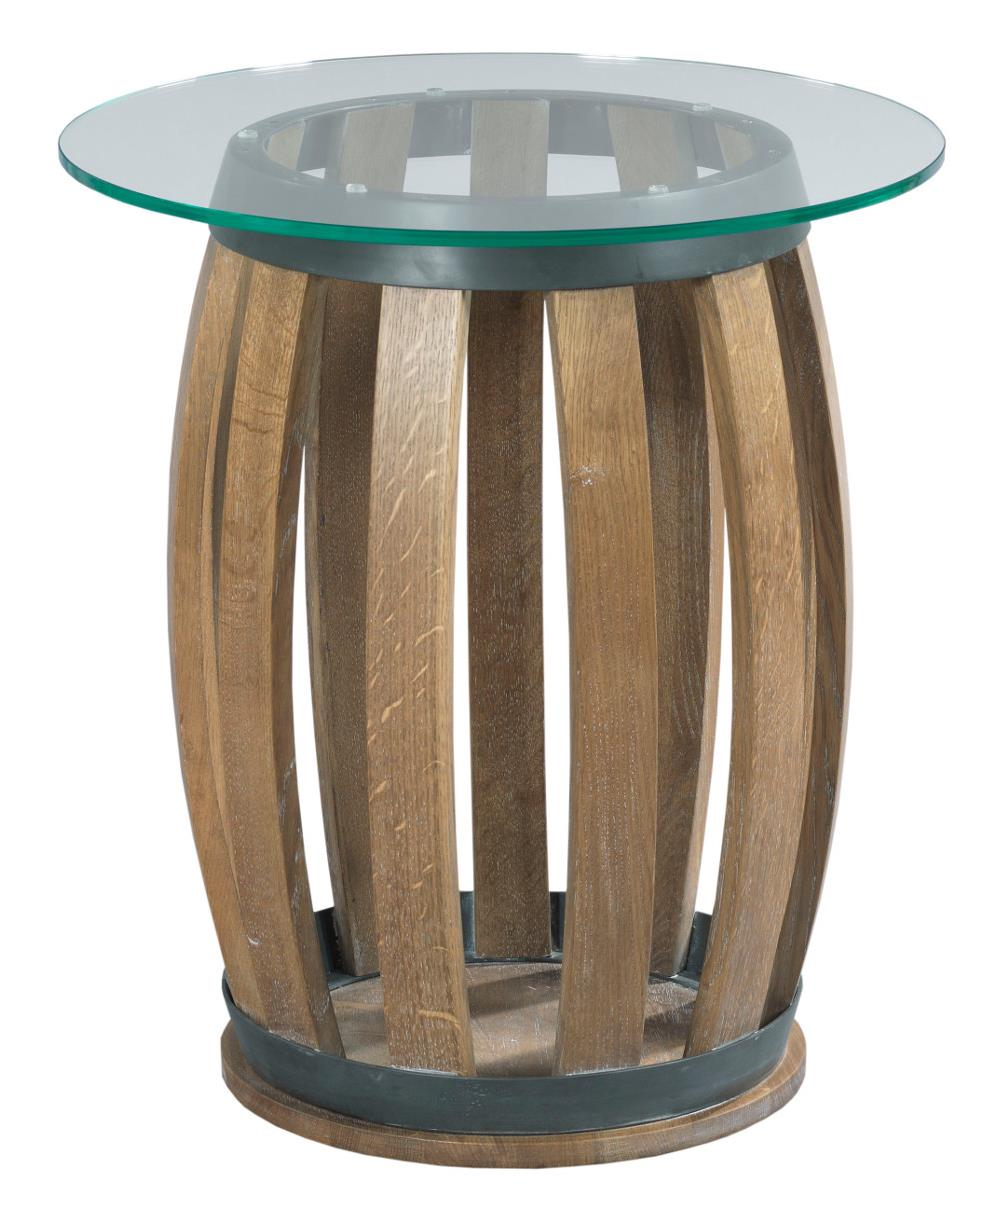 kincaid furniture stone ridge rustic wine barrel accent products color round glass top table tablecloth for square marble tops pier one clearance reclaimed wood nesting tables tro